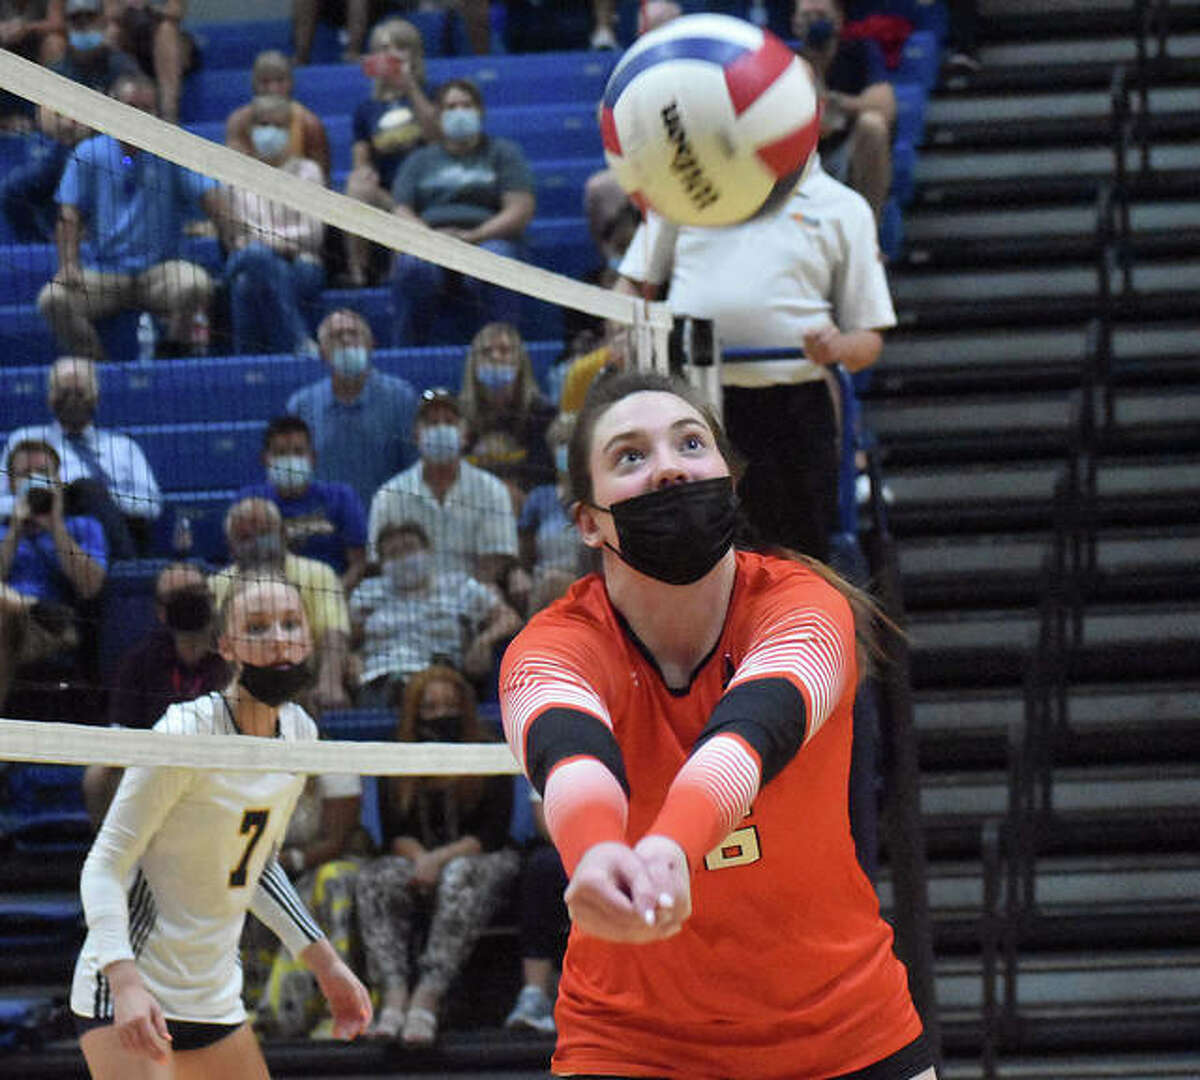 Edwardsville's Lexie Griffin saves the volley near the net during the second game against the O'Fallon Panthers on Tuesday in O'Fallon.